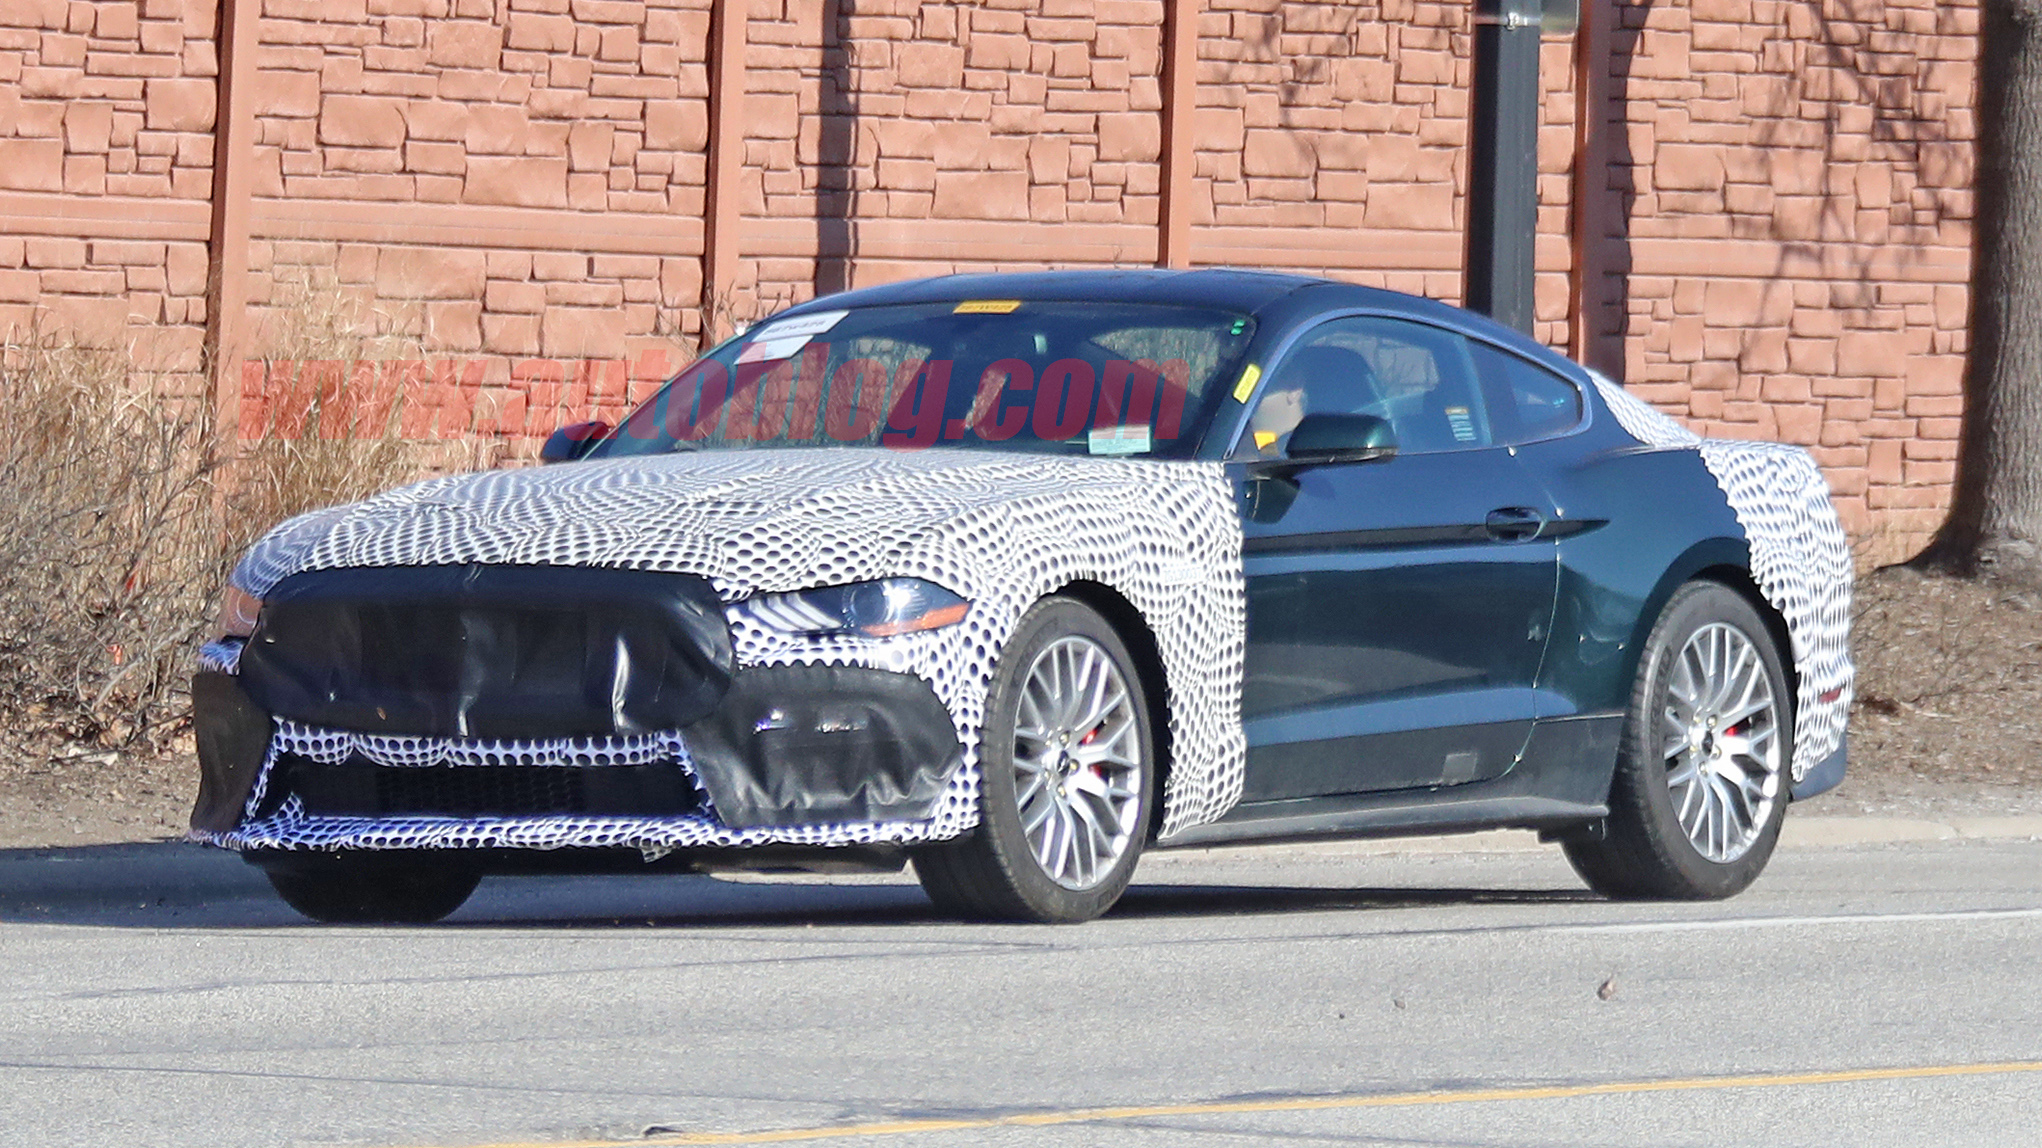 2021 Ford Mustang Mach 1 For Sale